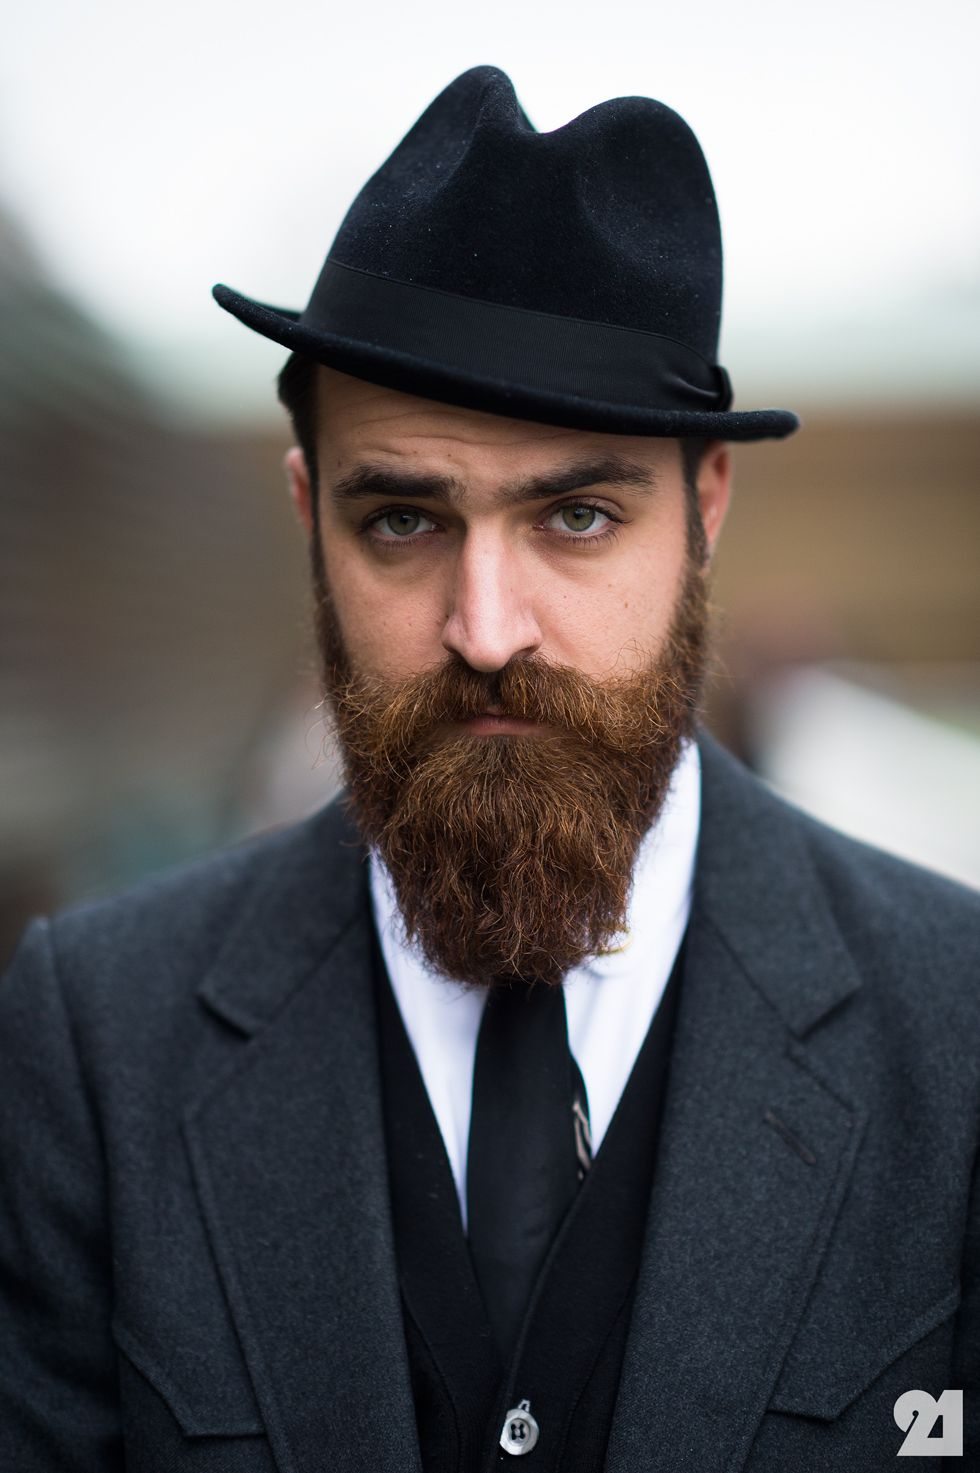 ba09cde15f9 Like the suit and tie look with this beard. Art Comes First  Inspirations   Photo Great Beards